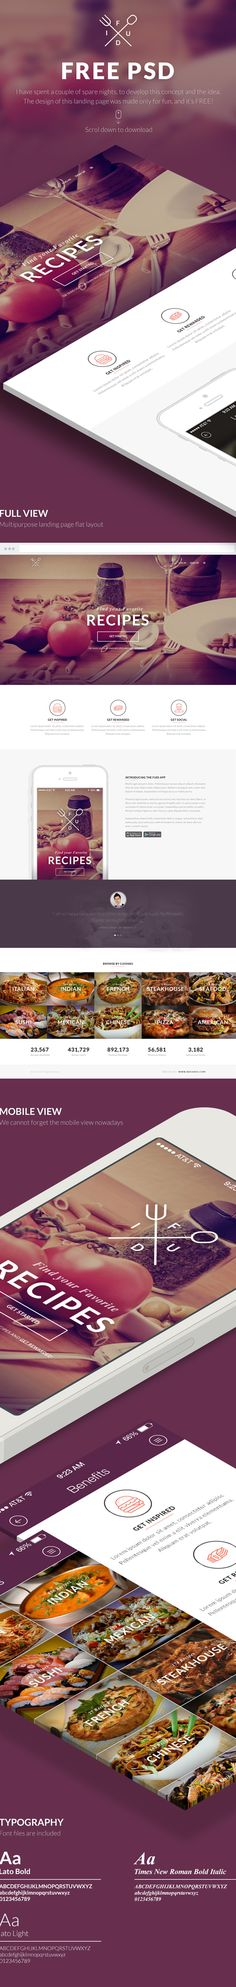 I have spent a couple of spare nights to develop this concept and the idea. The design of this landing page was made only for fun, and it's Free for you guys to download it. Please make sure to appreciate the project if you like it and follow if you want …